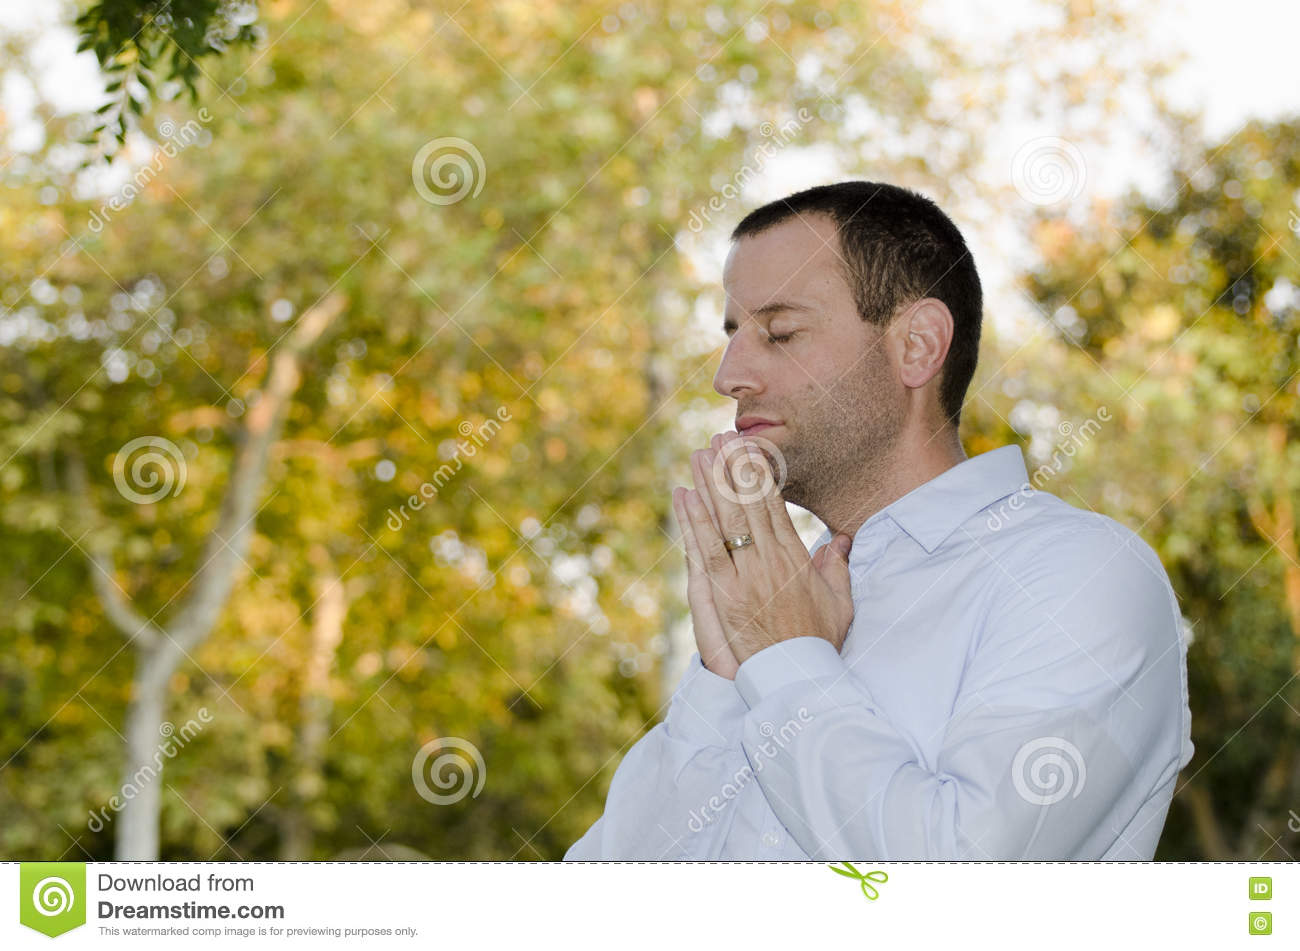 Man praying on a fall/autumn day.